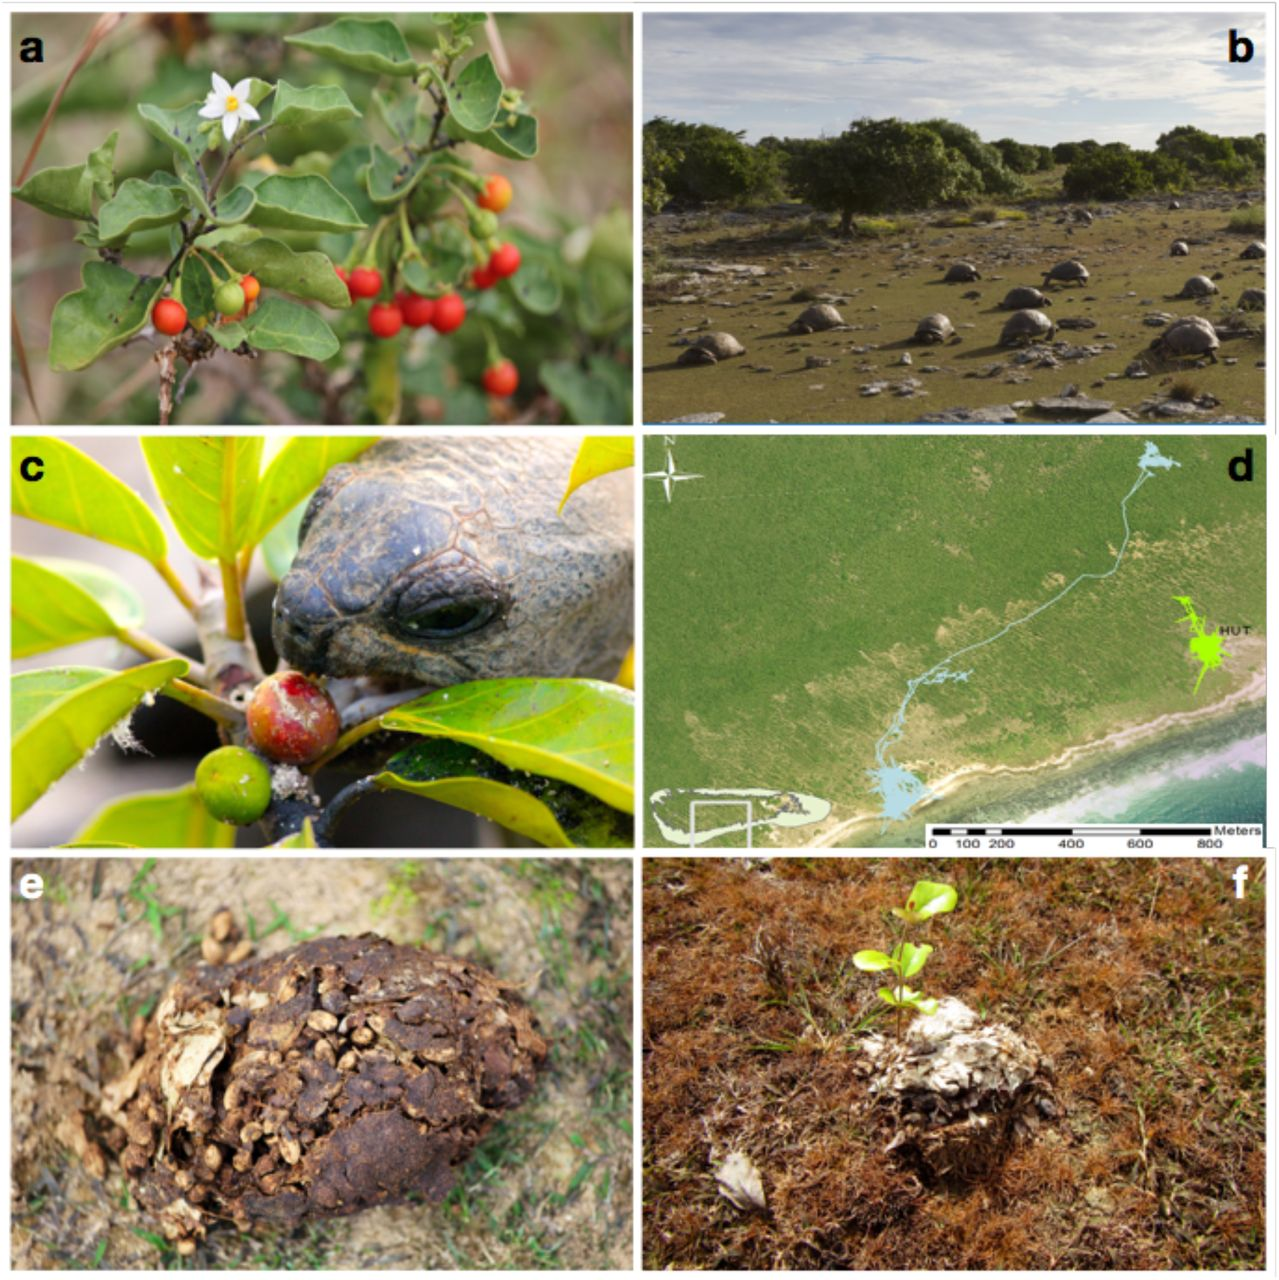 Frugivory and seed dispersal by chelonians: A review and